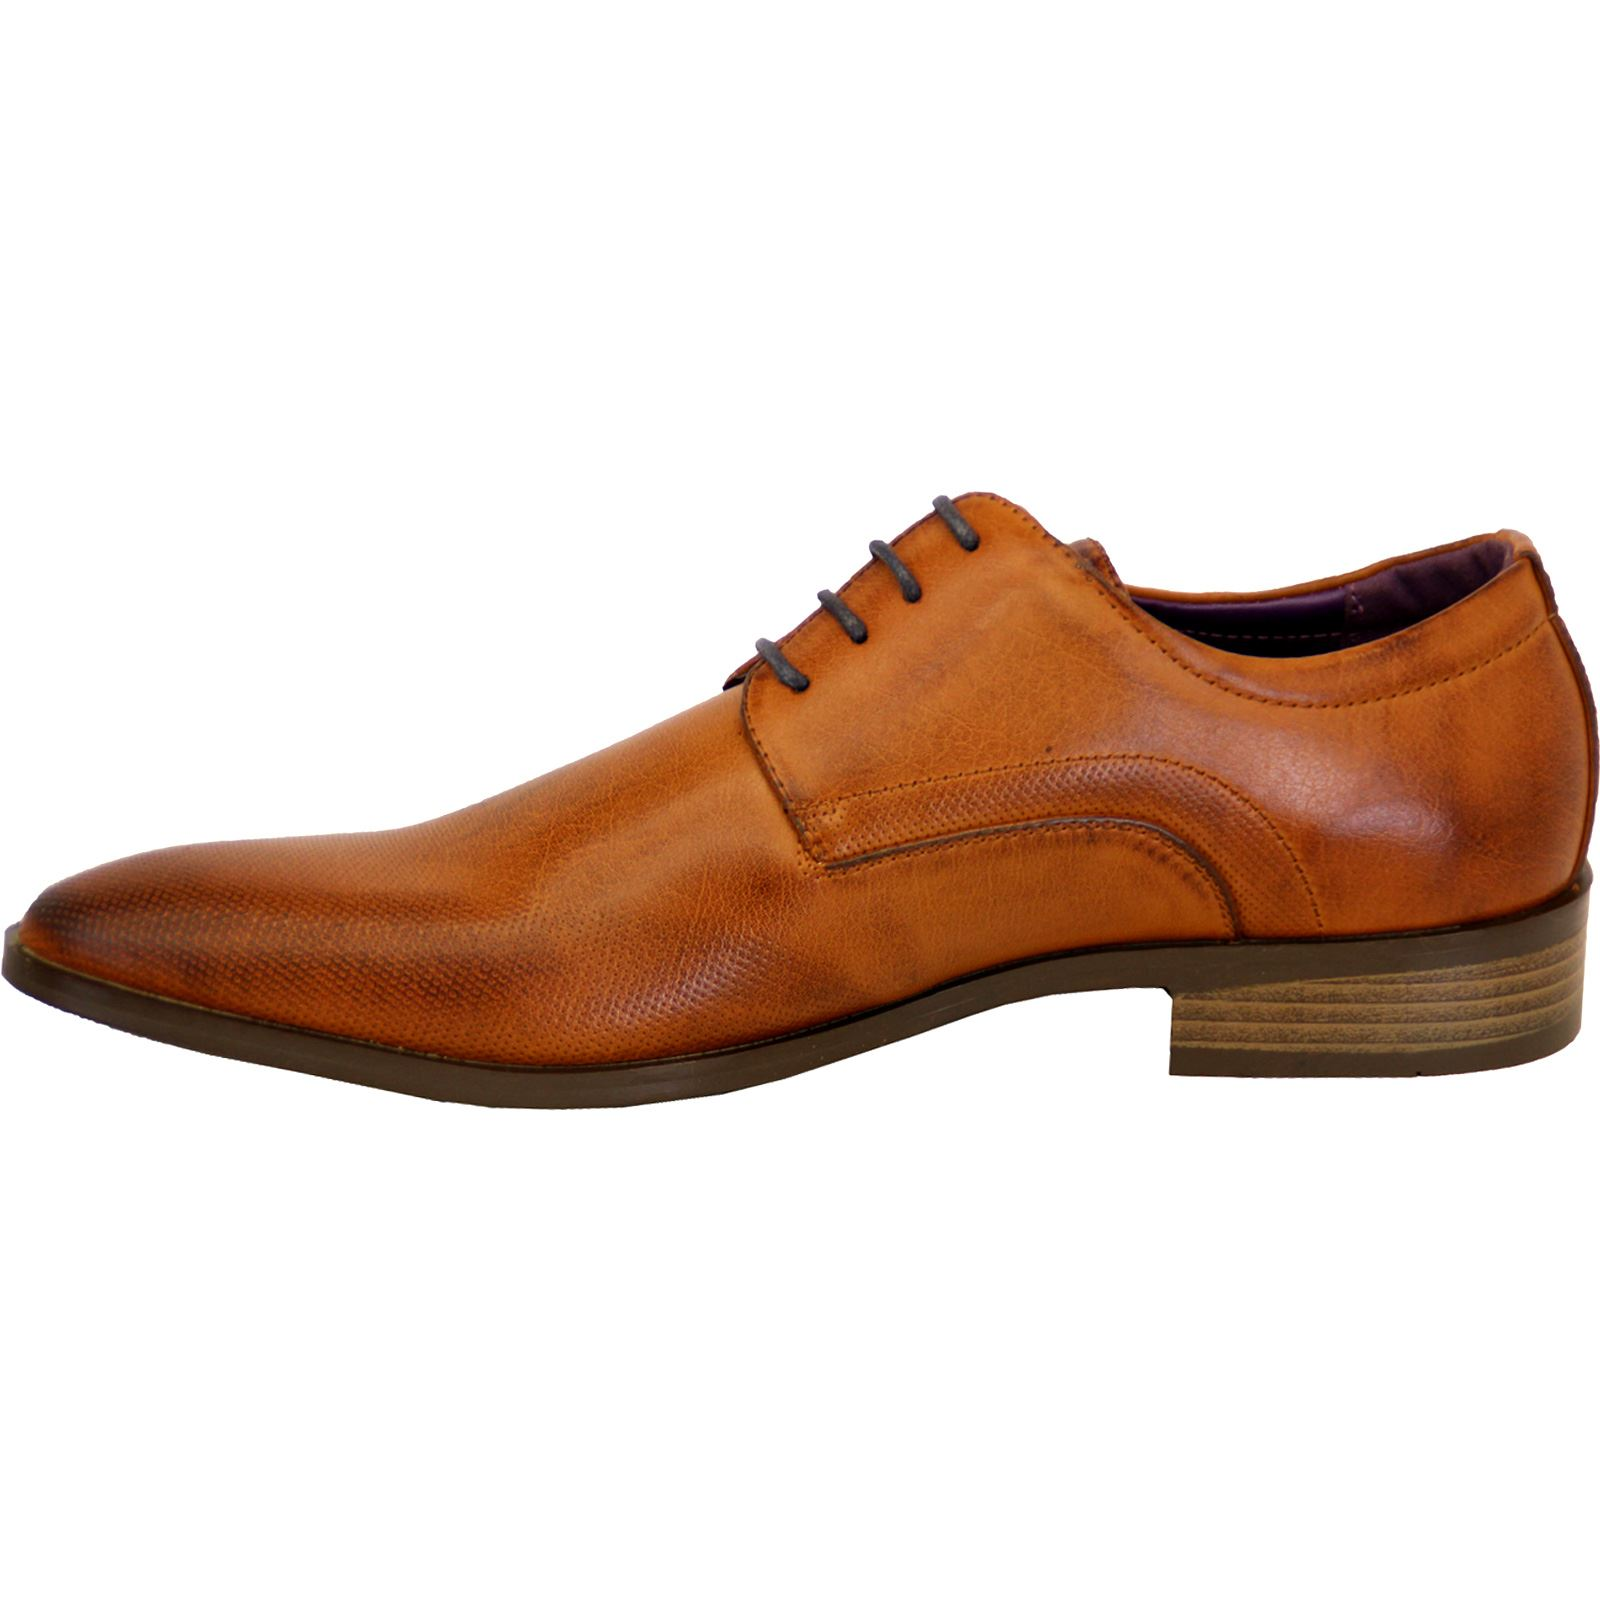 Mens-Faux-Leather-Shoes-Smart-Formal-Wedding-Office-Lace-Up-Designer-Brogues thumbnail 14